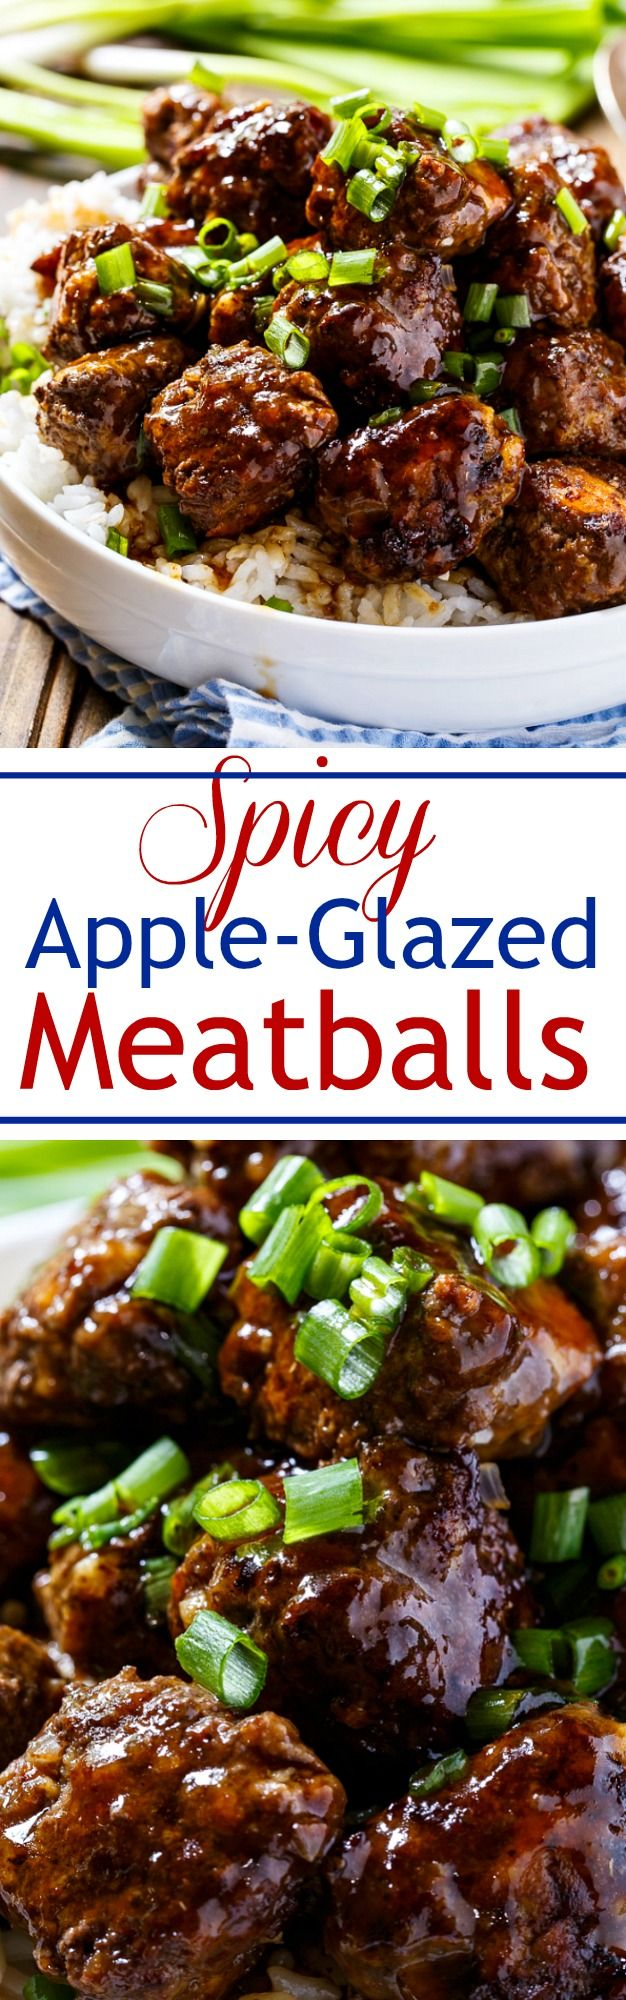 Spicy Apple-Glazed Meatballs are the ultimate sweet-and-spicy appetizer.